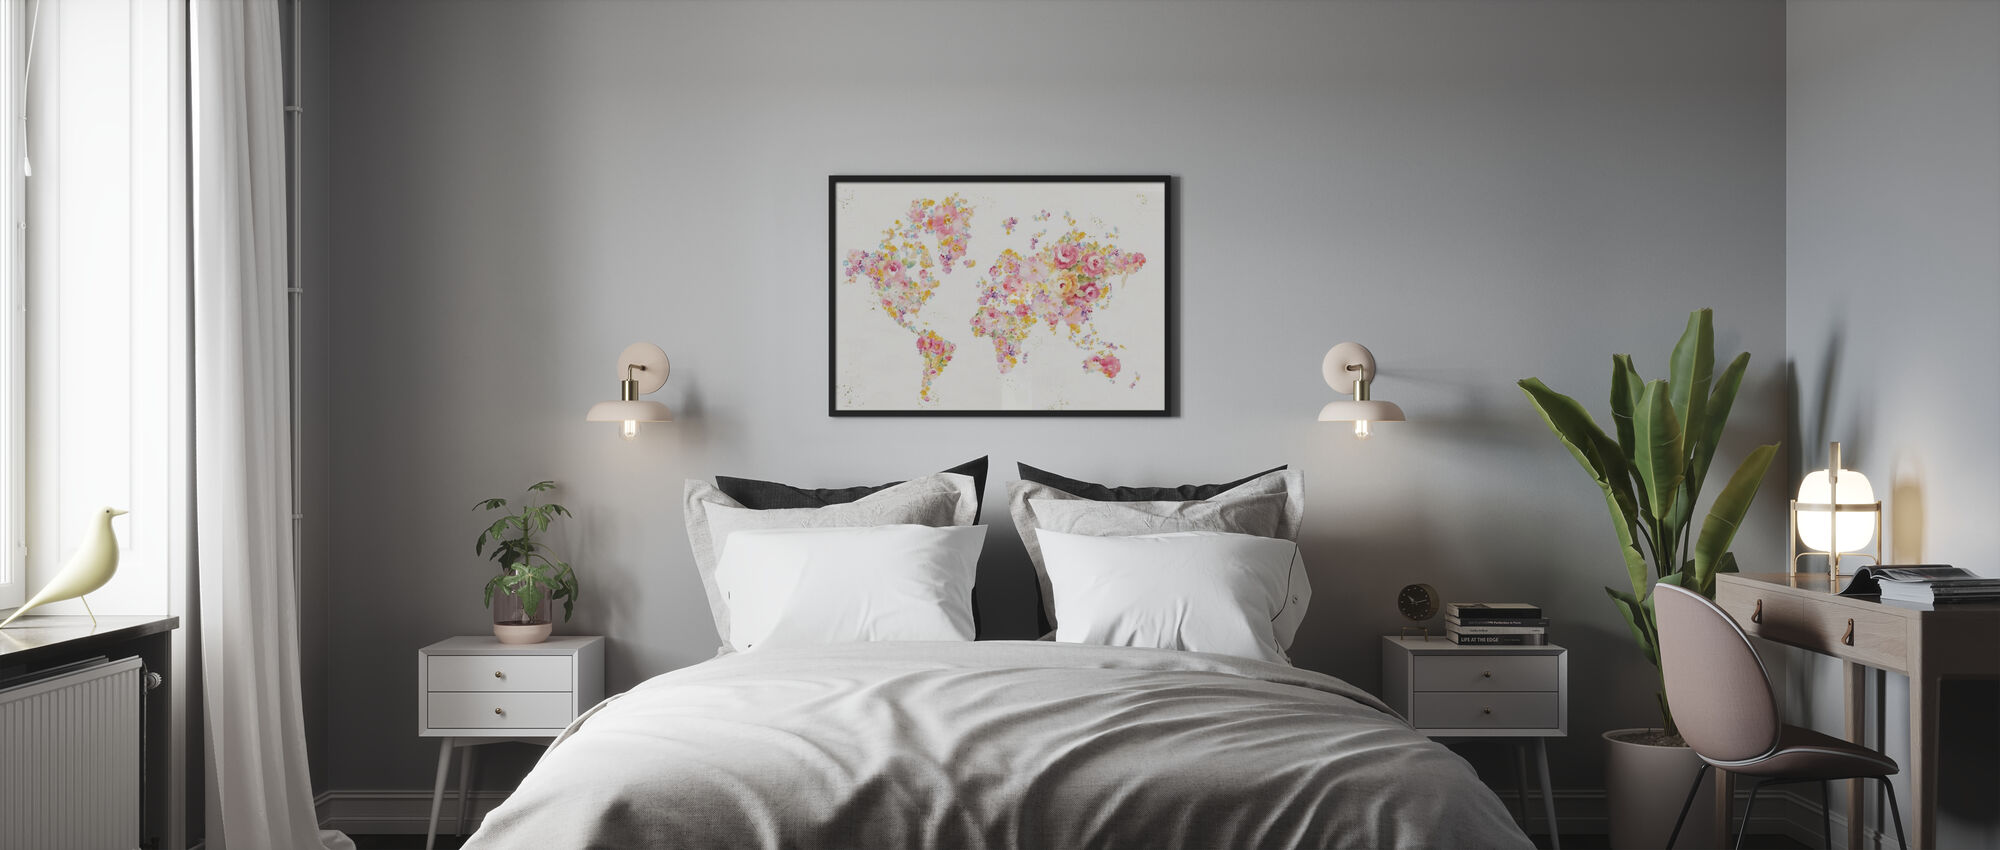 Midsummer World - No Border - Poster - Bedroom